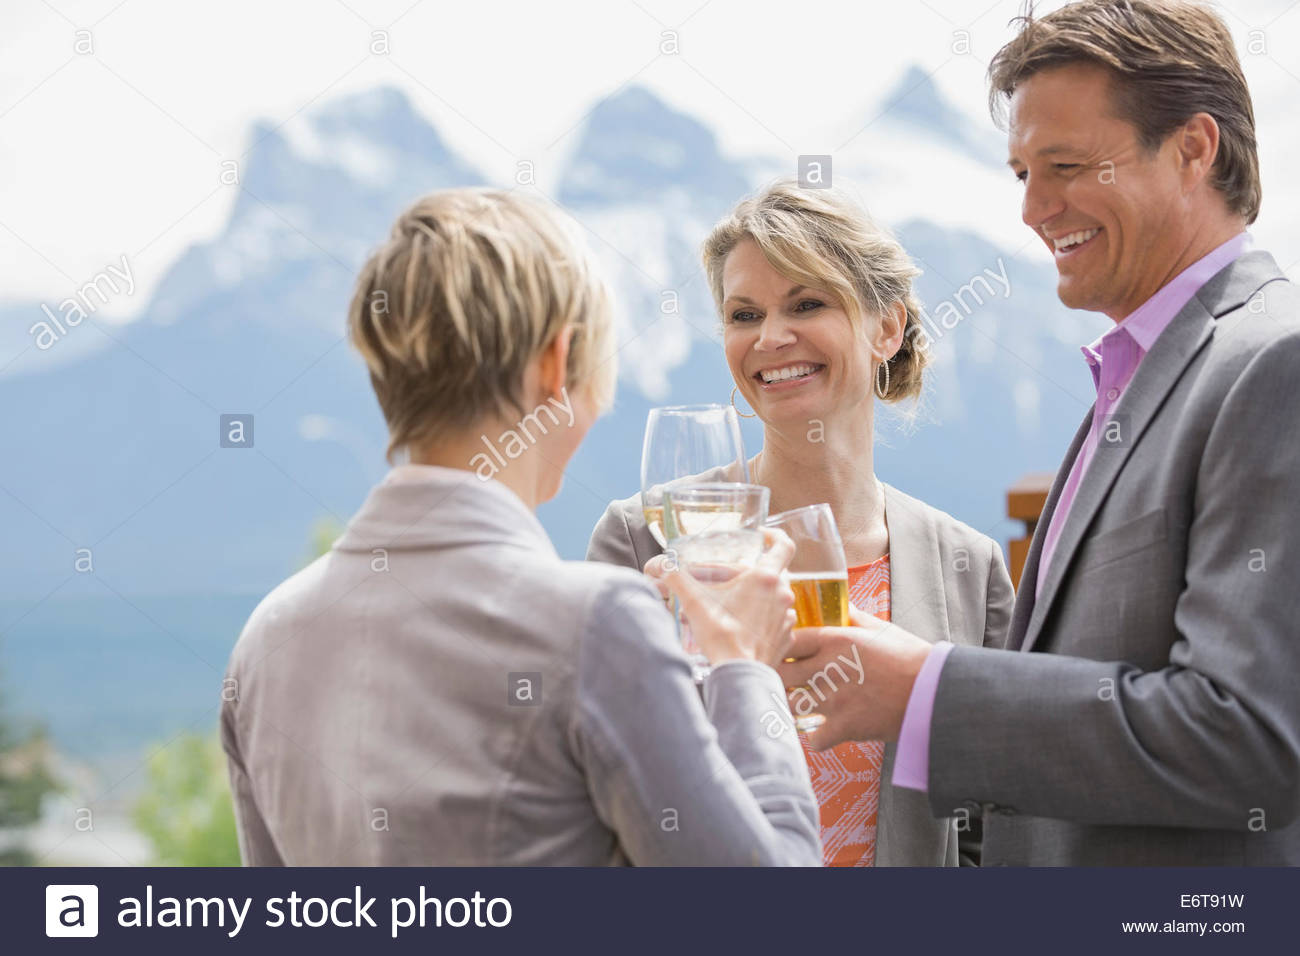 Les gens d'affaires toasting each other at networking event Photo Stock